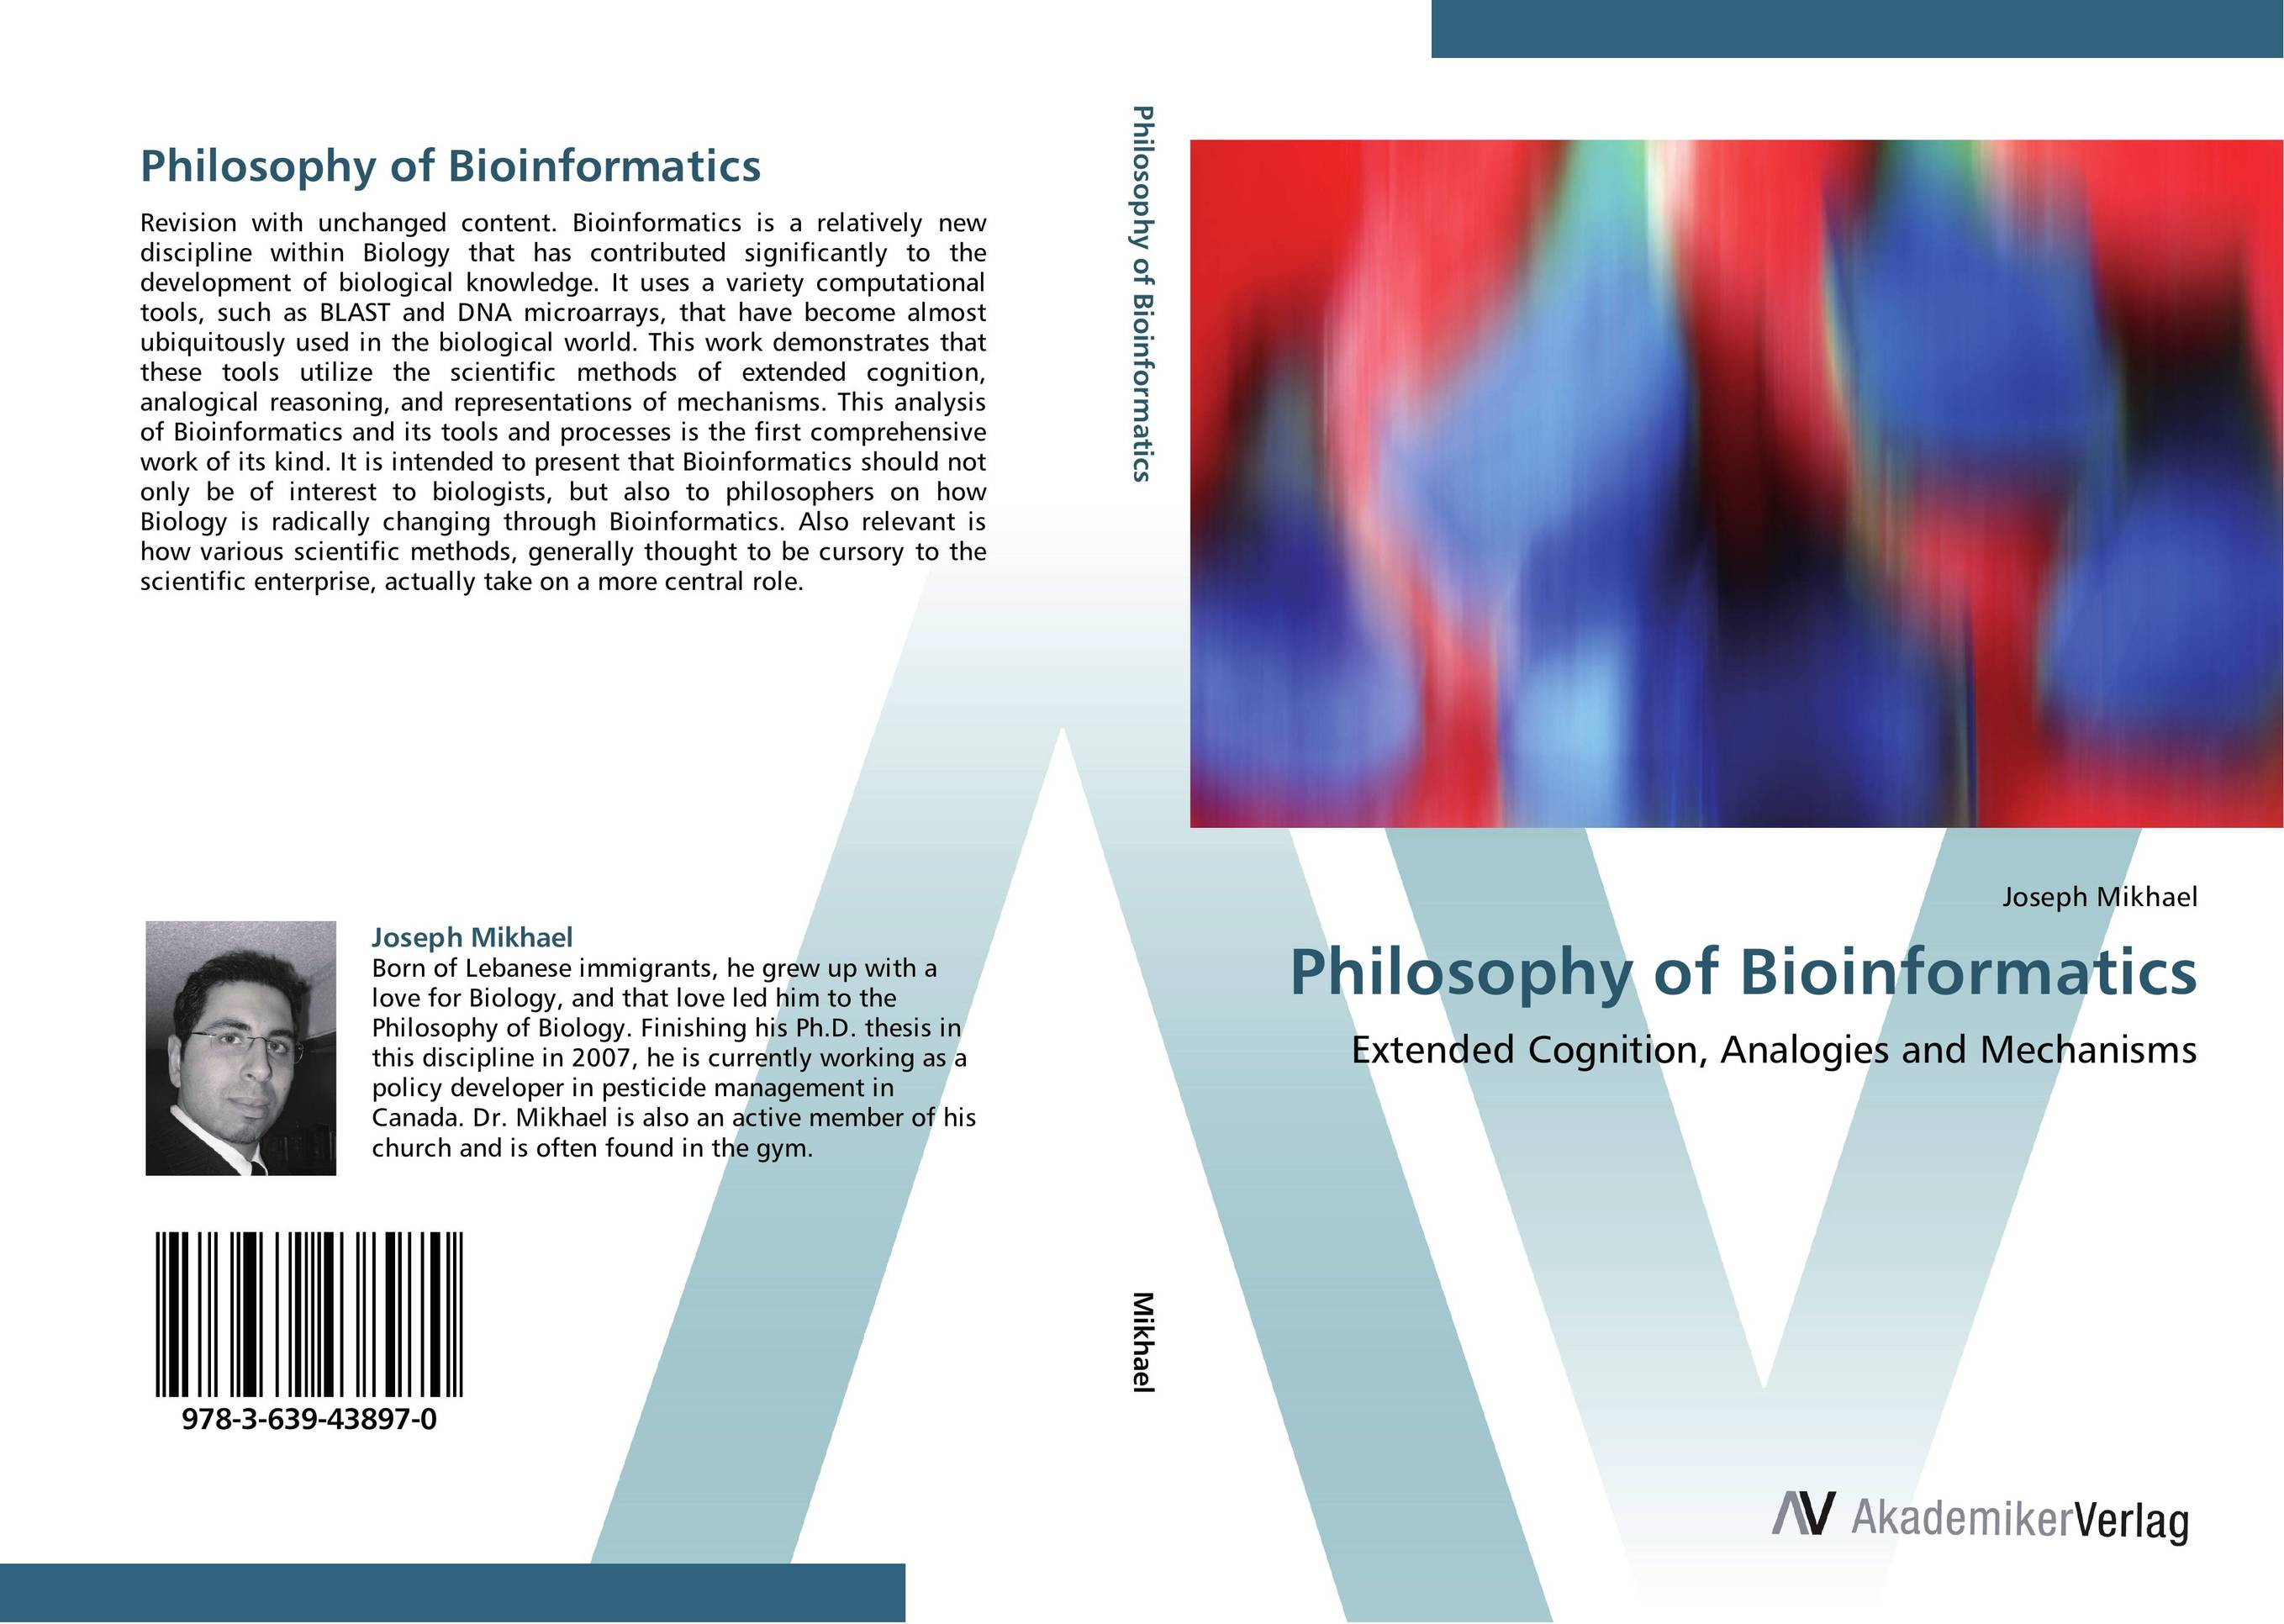 Philosophy of Bioinformatics how biology shapes philosophy